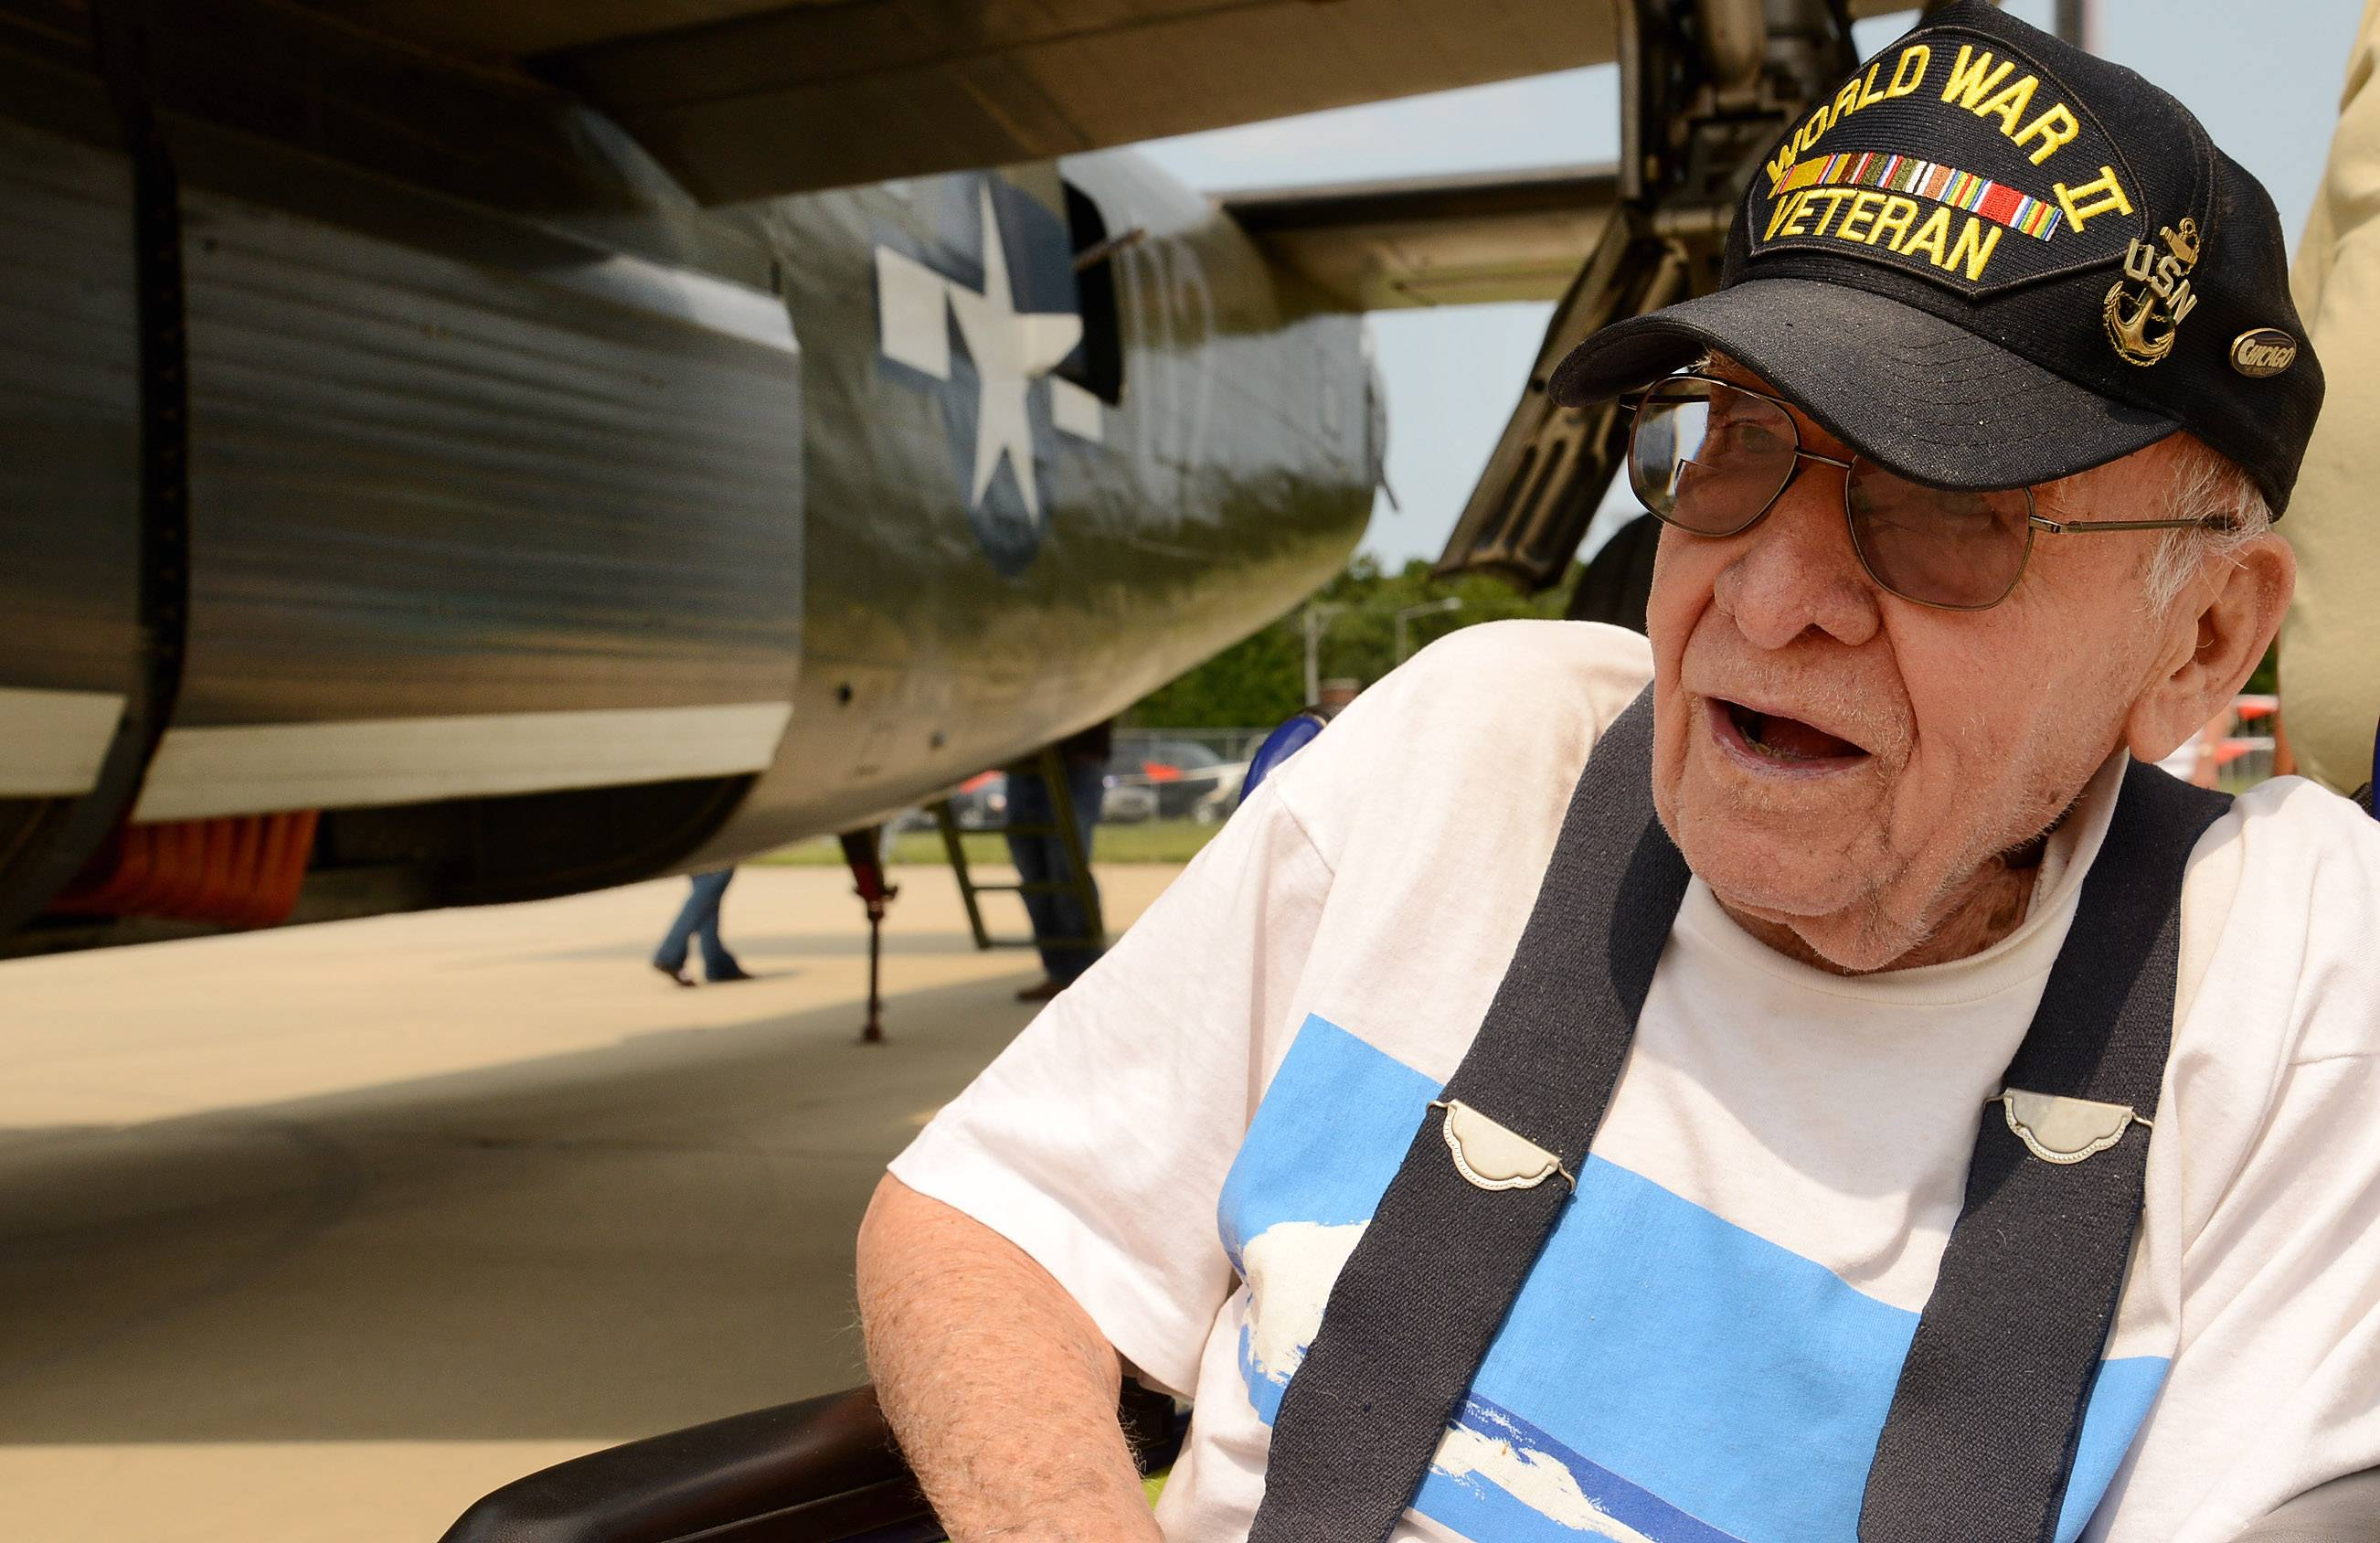 Joseph Houska, 92, of River Grove, worked on aircraft like the B-24 Liberator during World War II. The Collings Foundation's Wings of Freedom tour flew the rare plane to Chicago Executive Airport in Wheeling Friday.